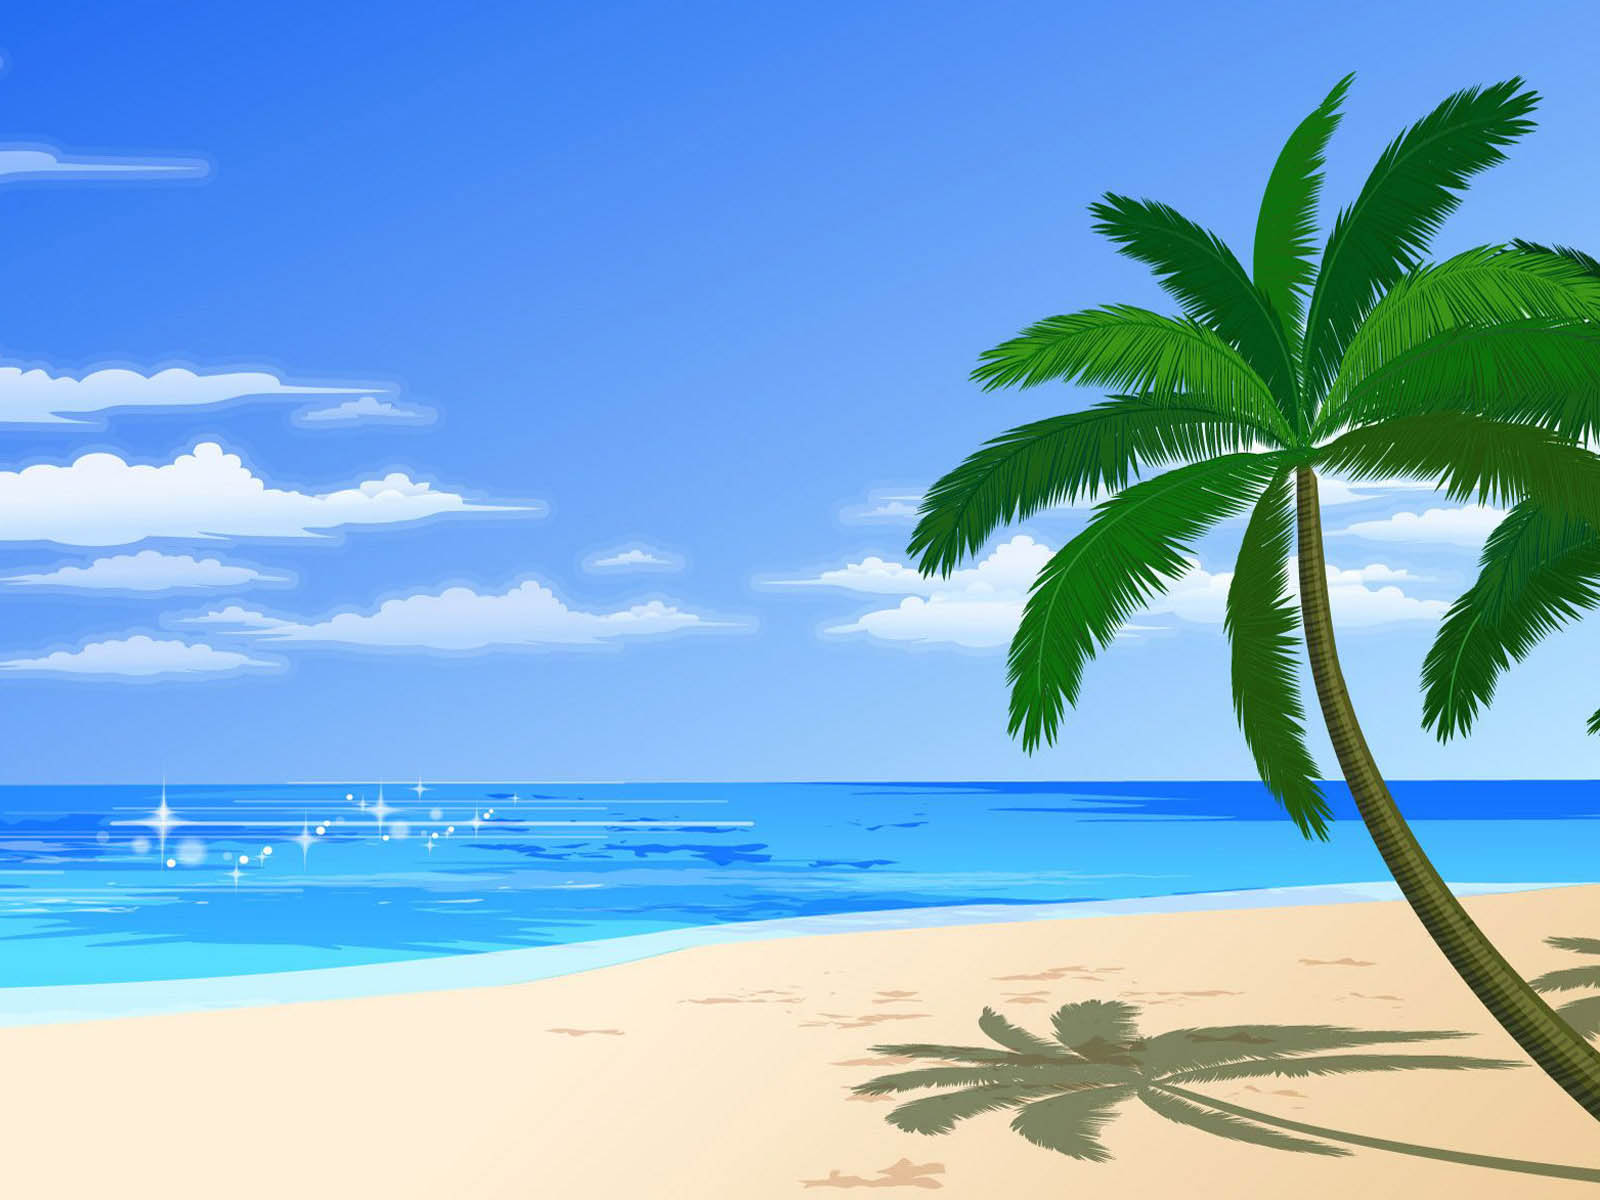 Clipart beach. Backgrounds hd wallpaper background